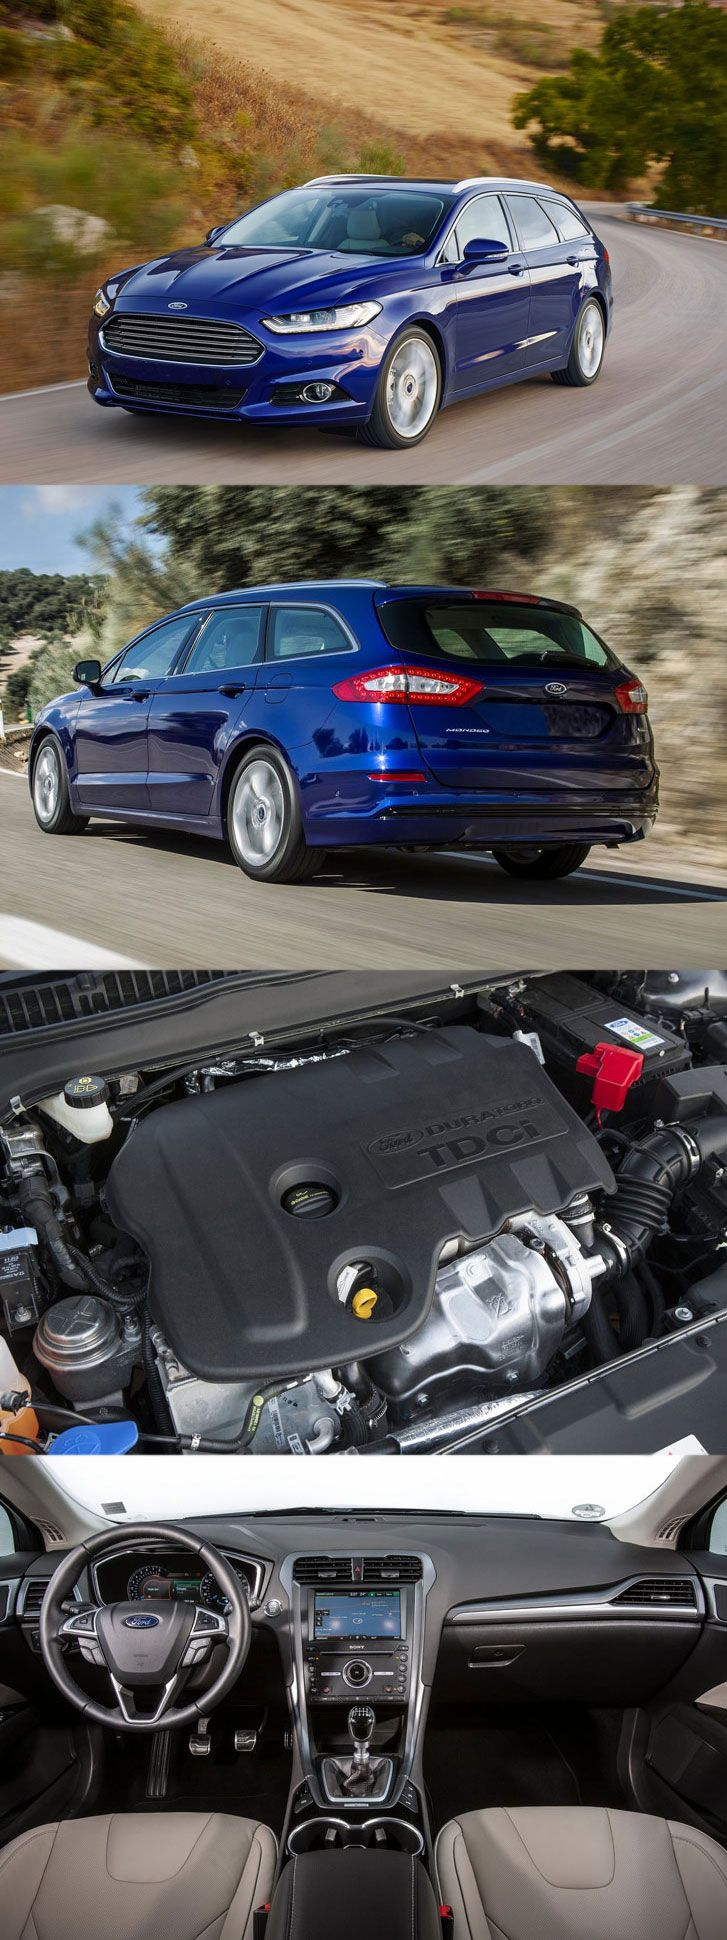 Ford mondeo wagon gets 1 6 litre tdci engine get more details at http